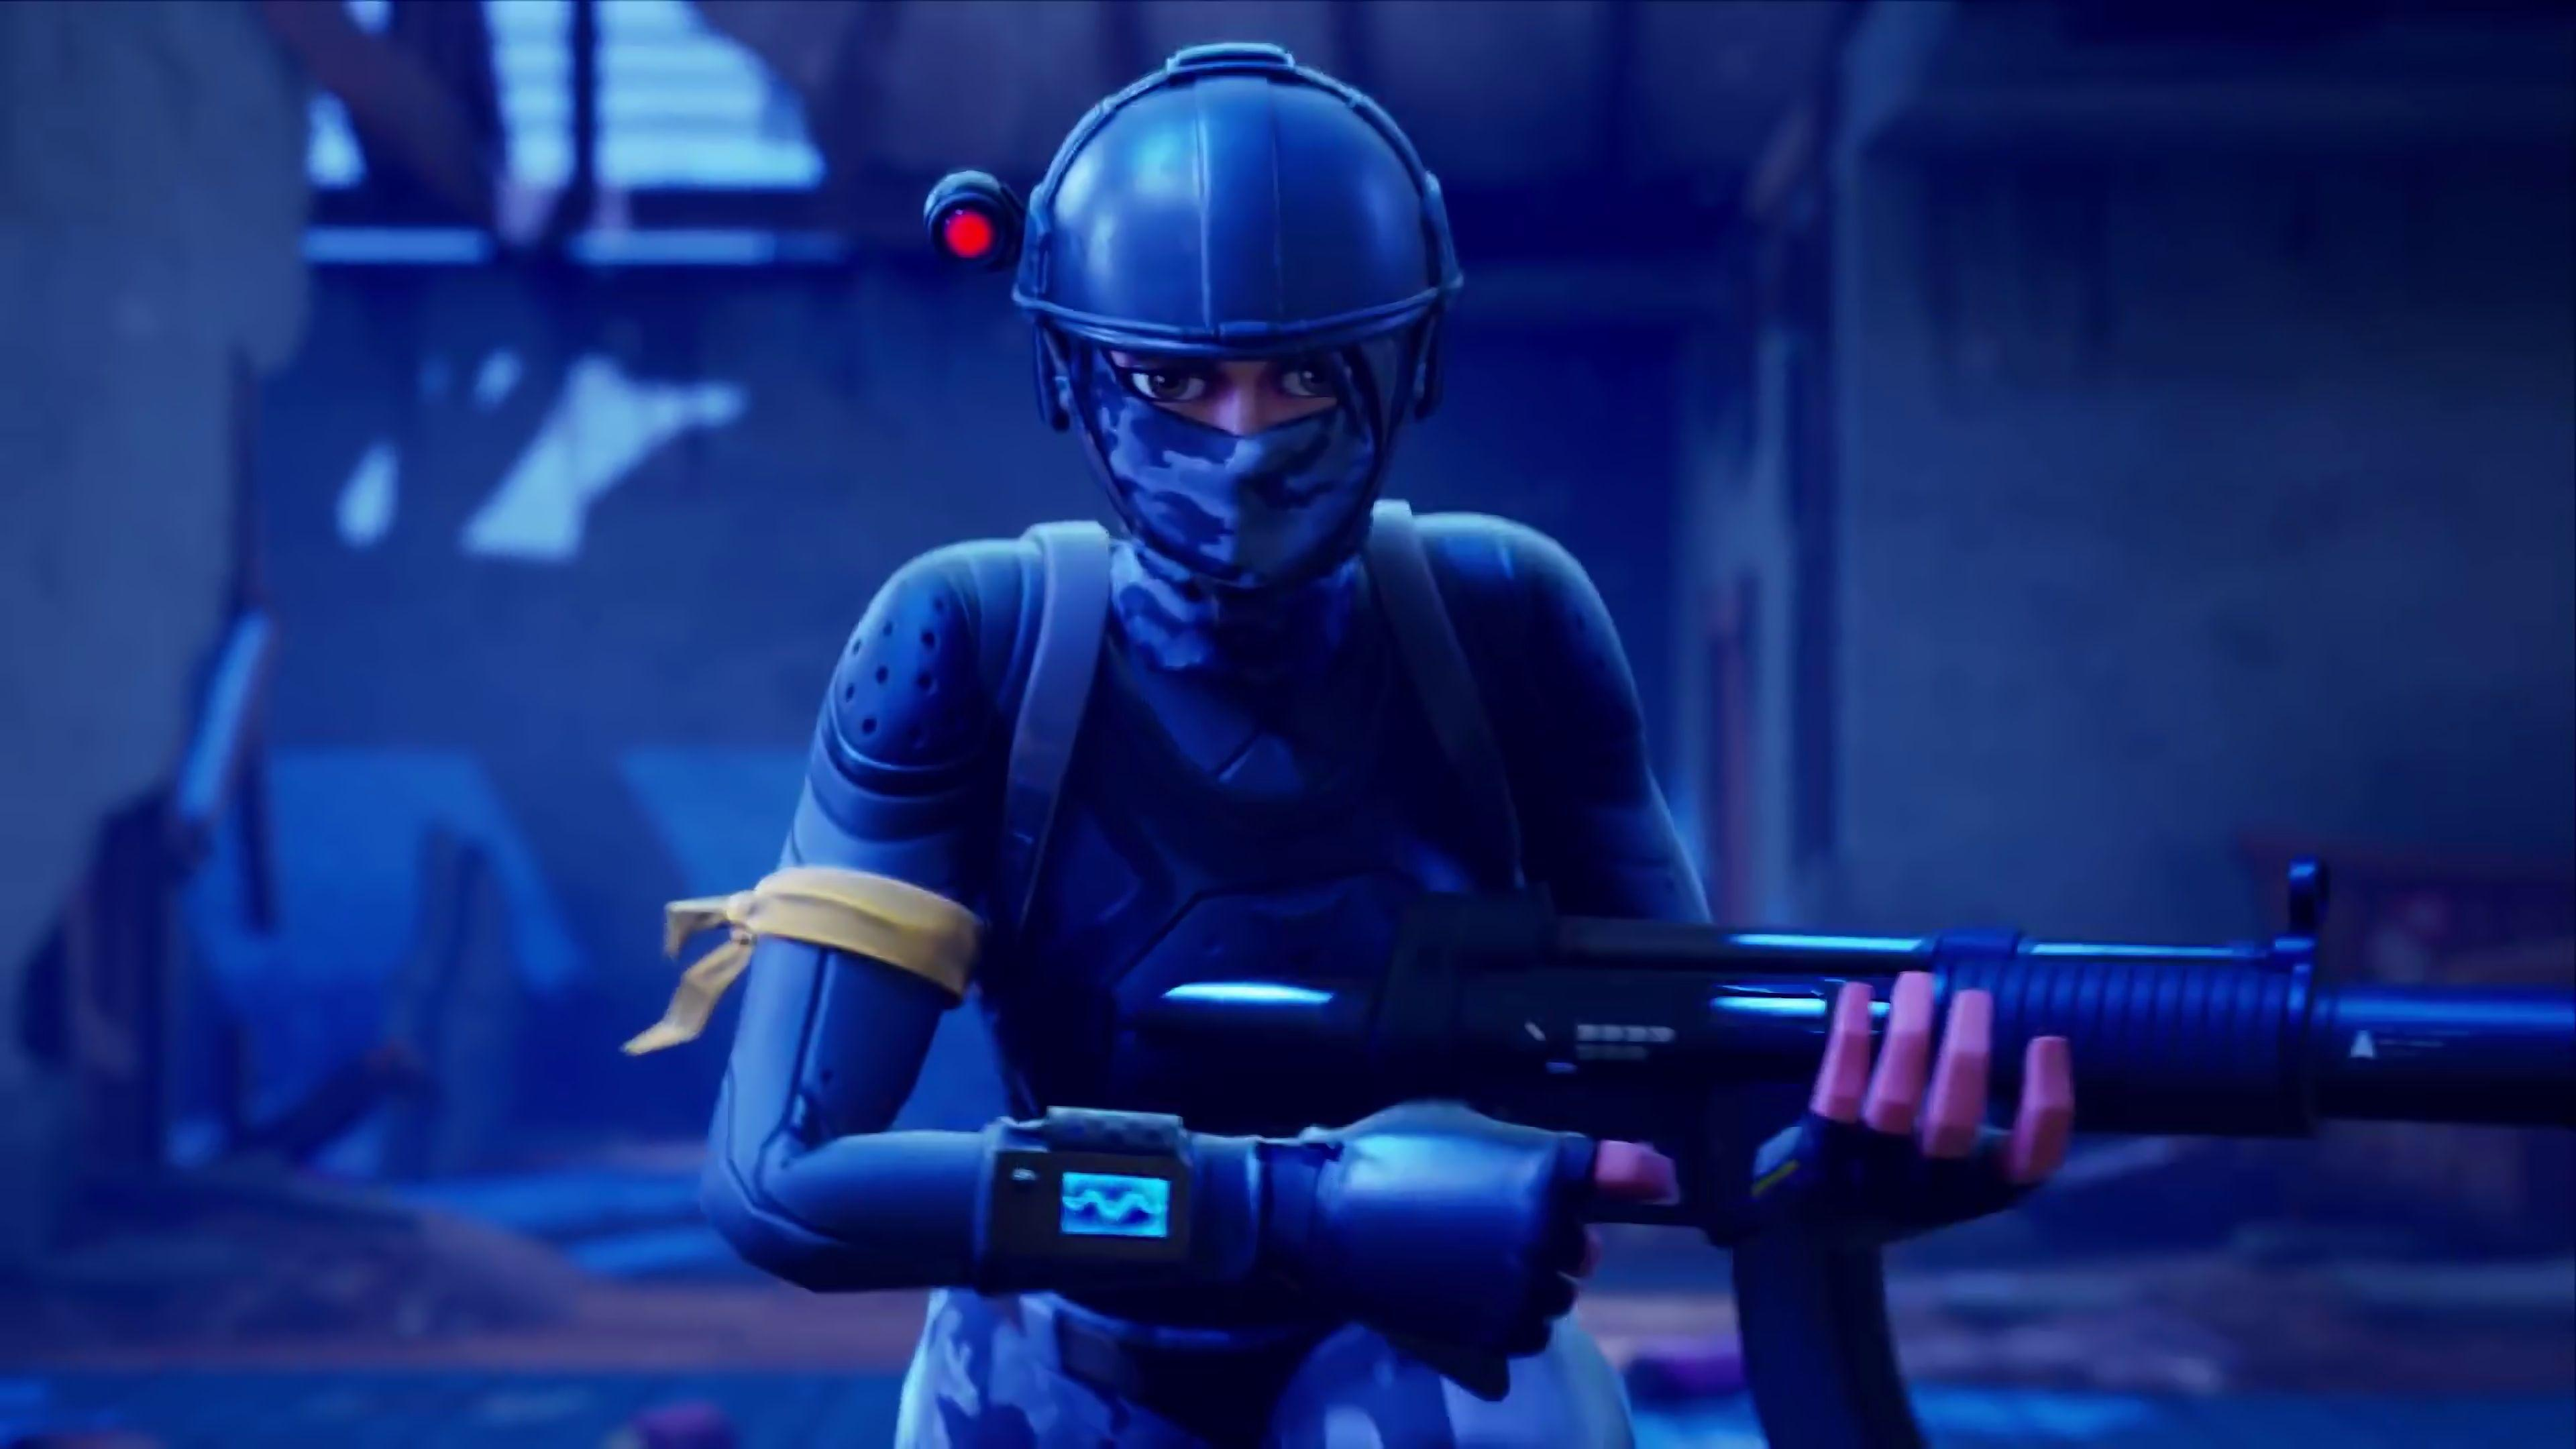 Fortnite Wallpapers Battle Royale Elite Agent Wallpapers and